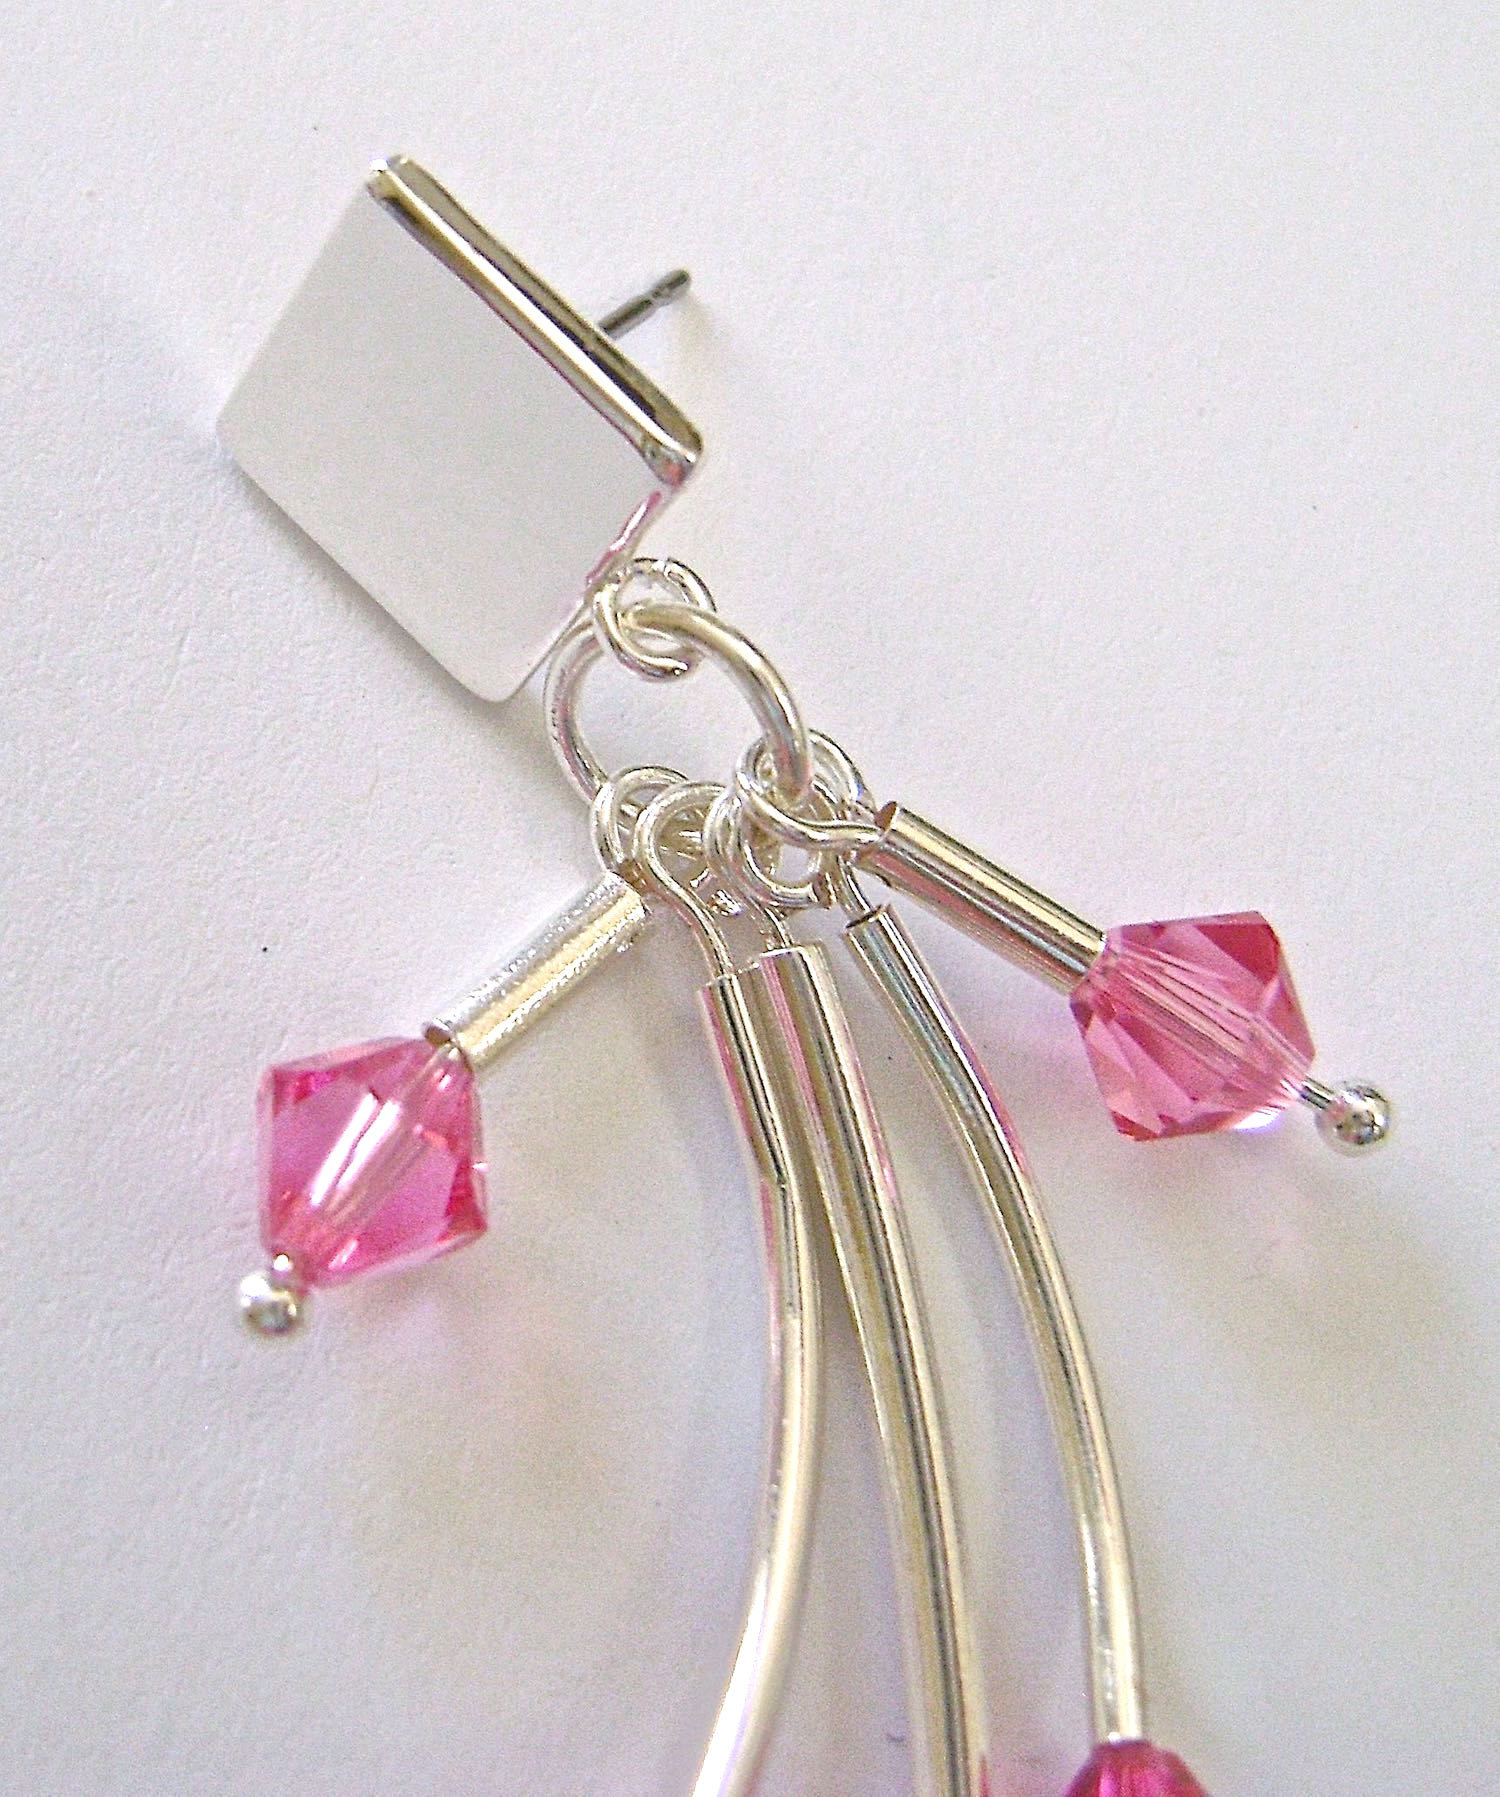 step 7 - Attach the jump ring through the loop in the earring post and close it with pliers.